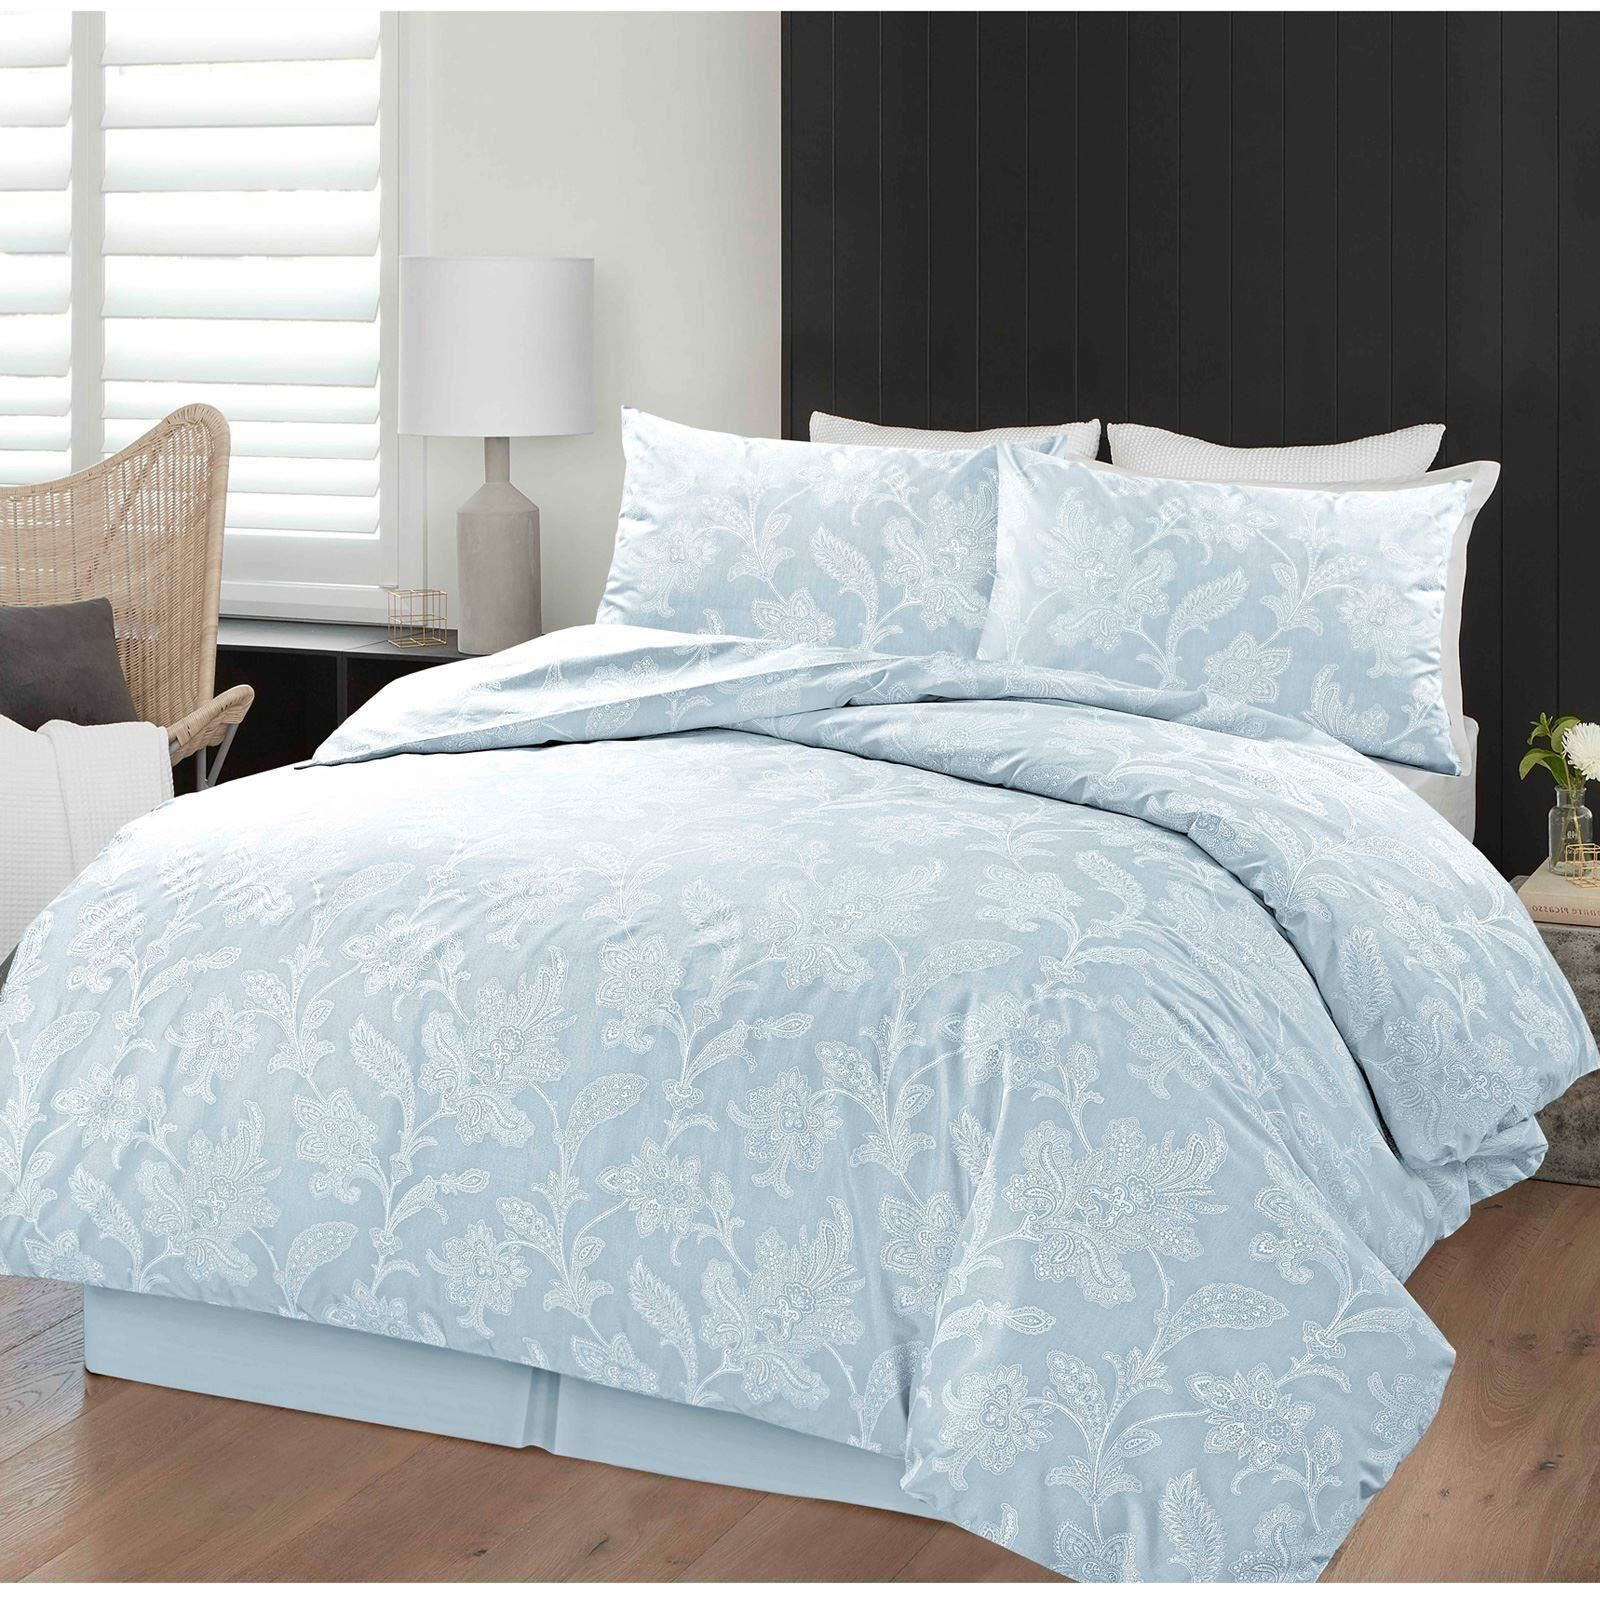 color chambray duvet cotton sets bedding modern brand home casual from solid washed online find eikei at garden style covers products cover and bedd